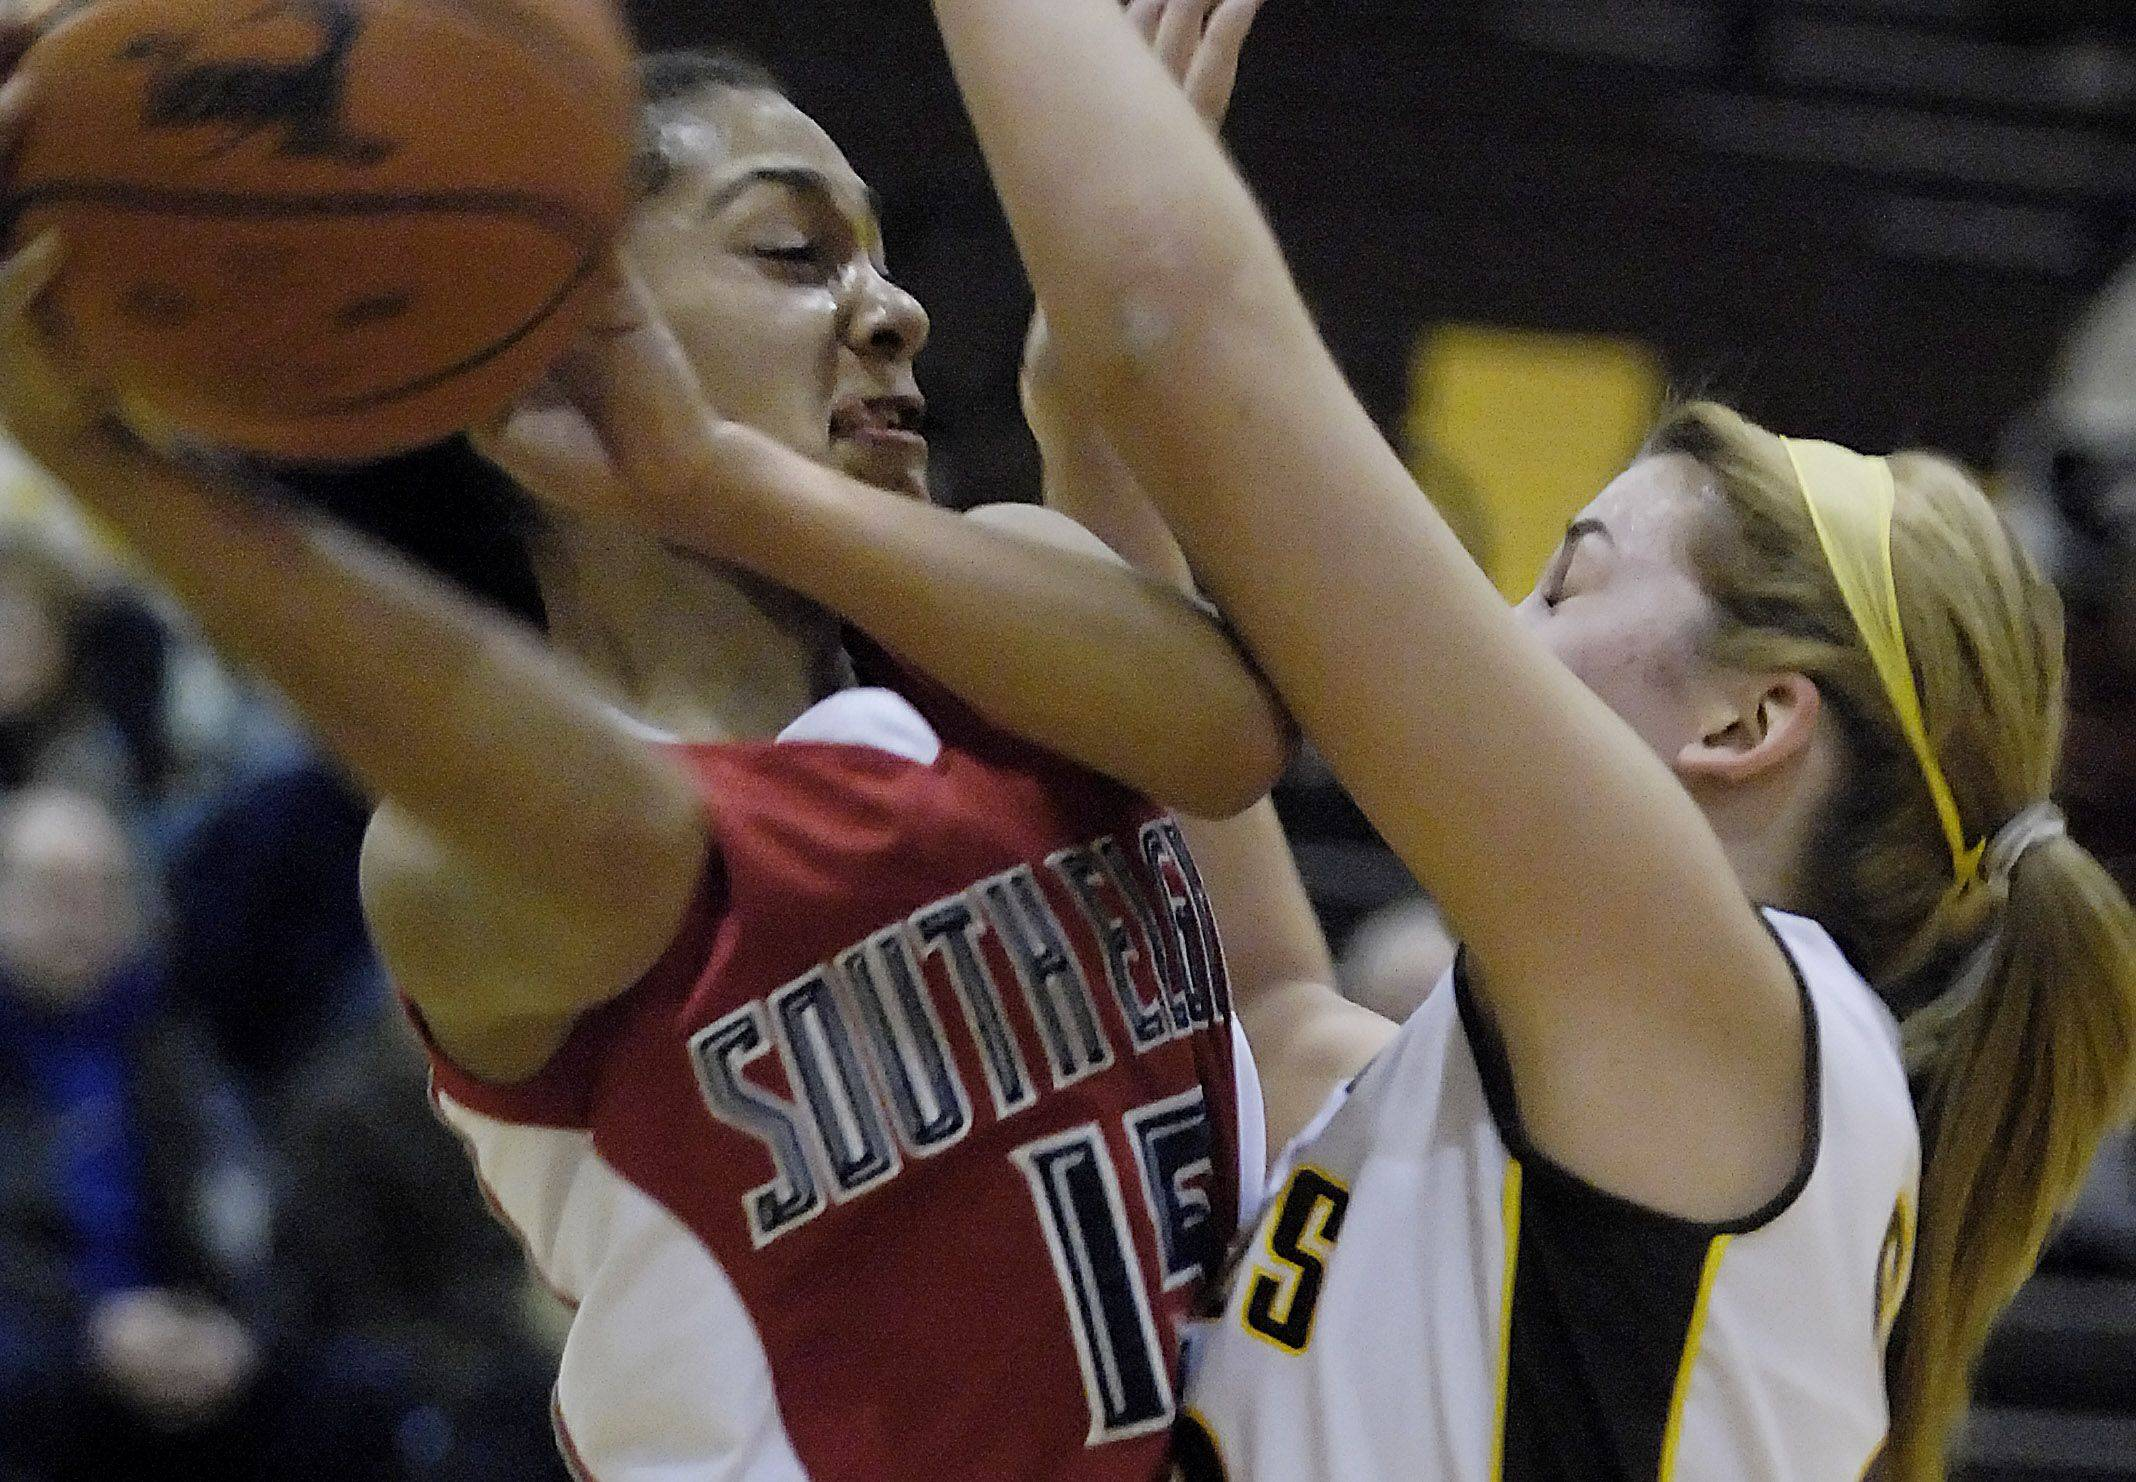 South Elgin's Becca Smith tries to pass around Jacobs' Melanie Schwerdtmann .